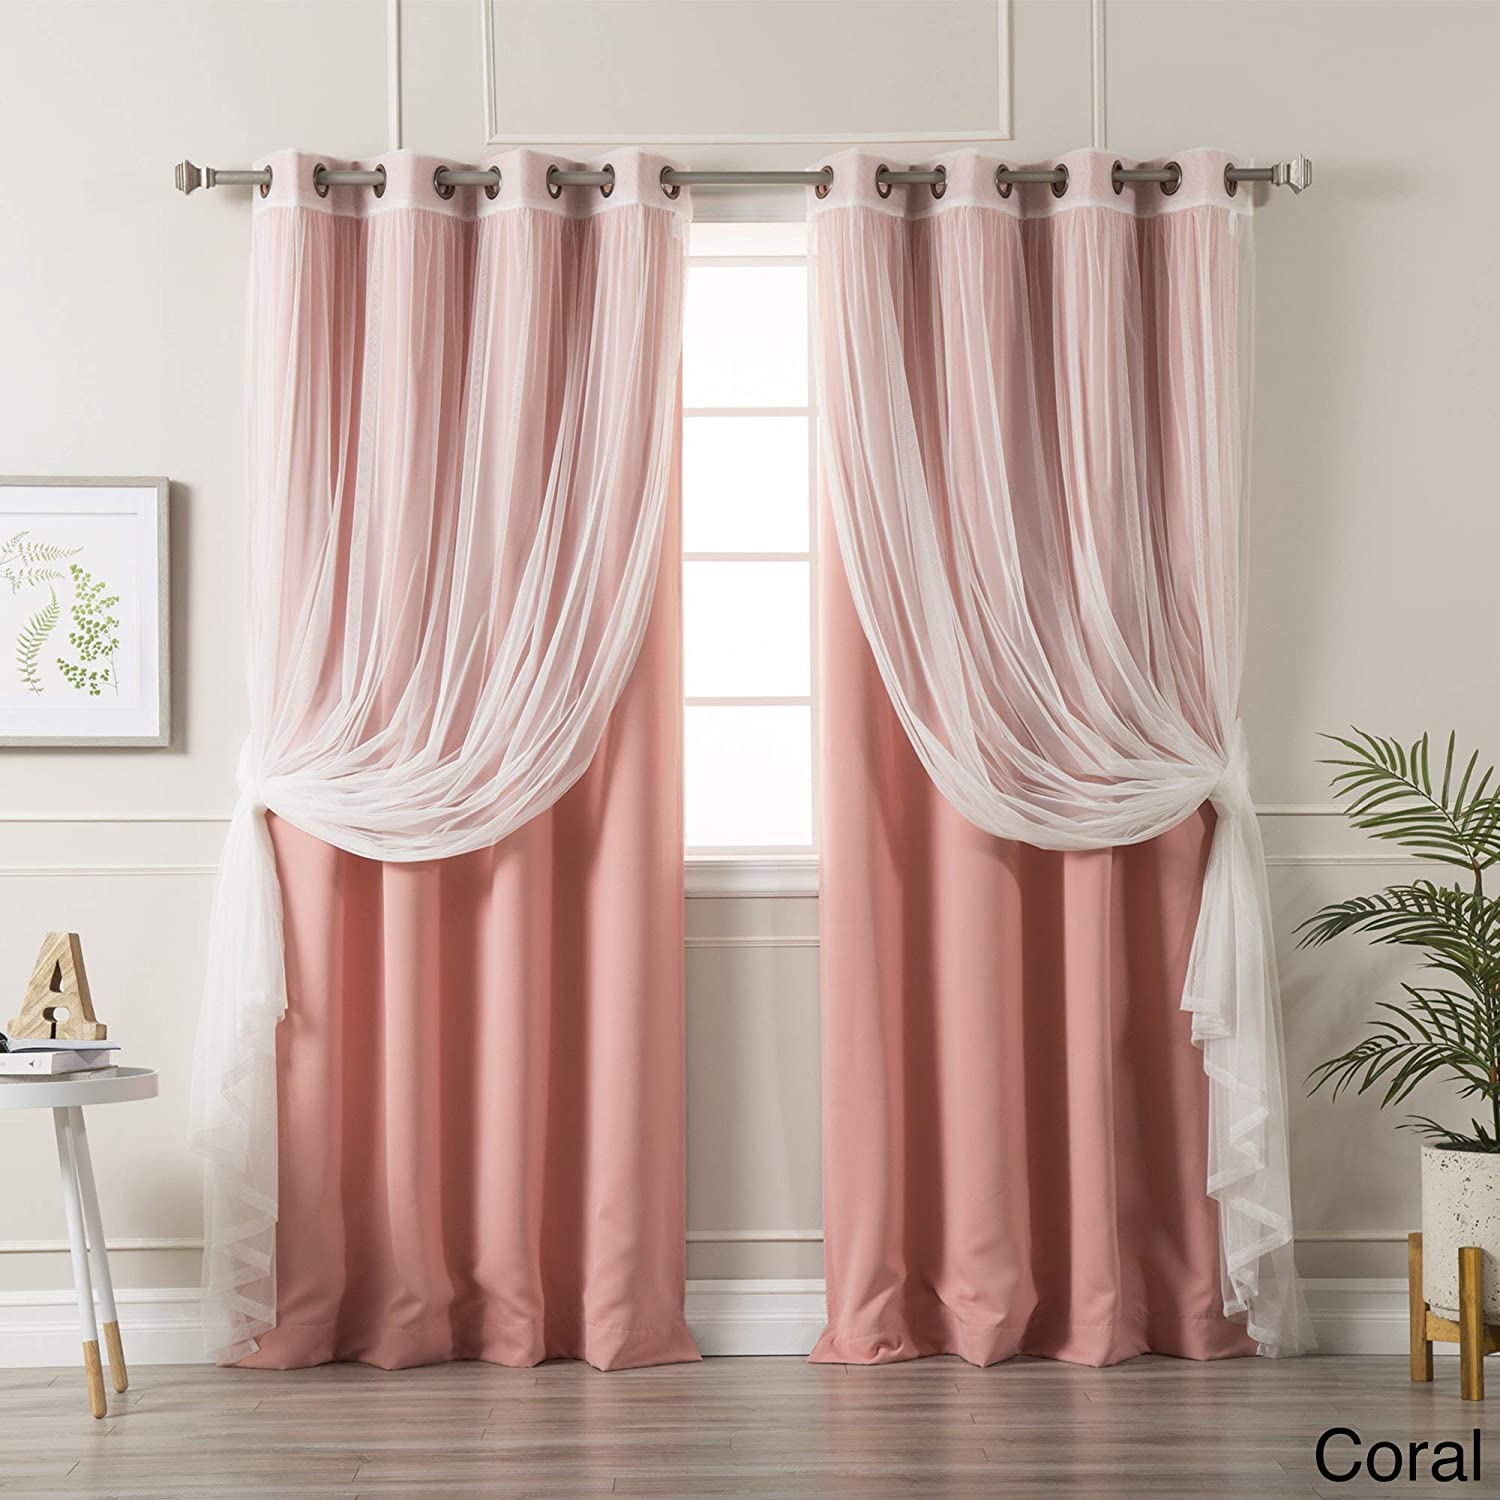 Aurora Home Mix and Match Blackout Tulle Lace Sheer 4 Piece Curtain Panel Set Coral 52 x 84 84 Inches